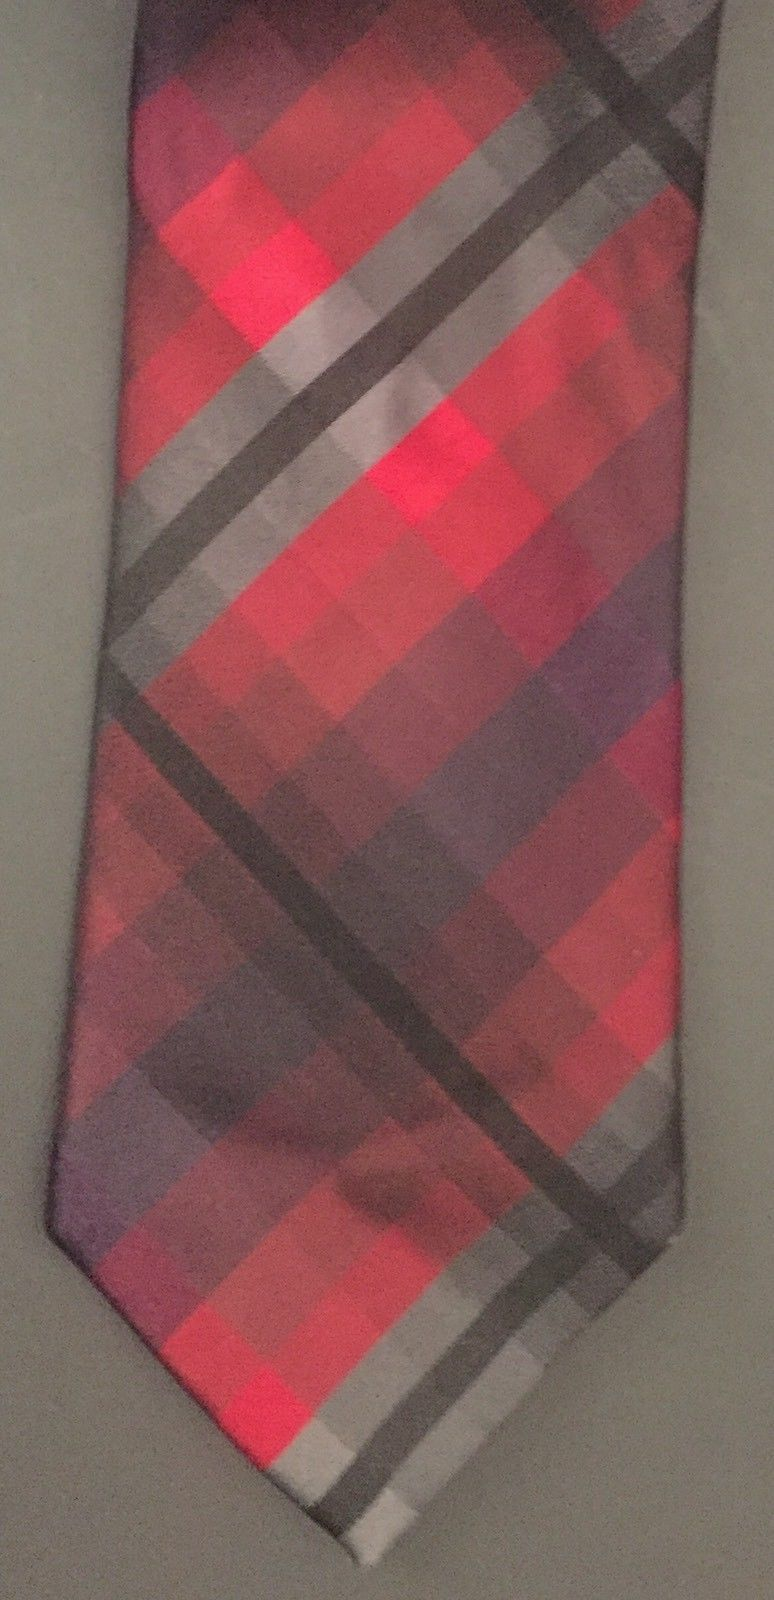 Kenneth Cole Reaction Tie Red Black Gray Cubed Plaid Preppy Necktie Neckwear image 2